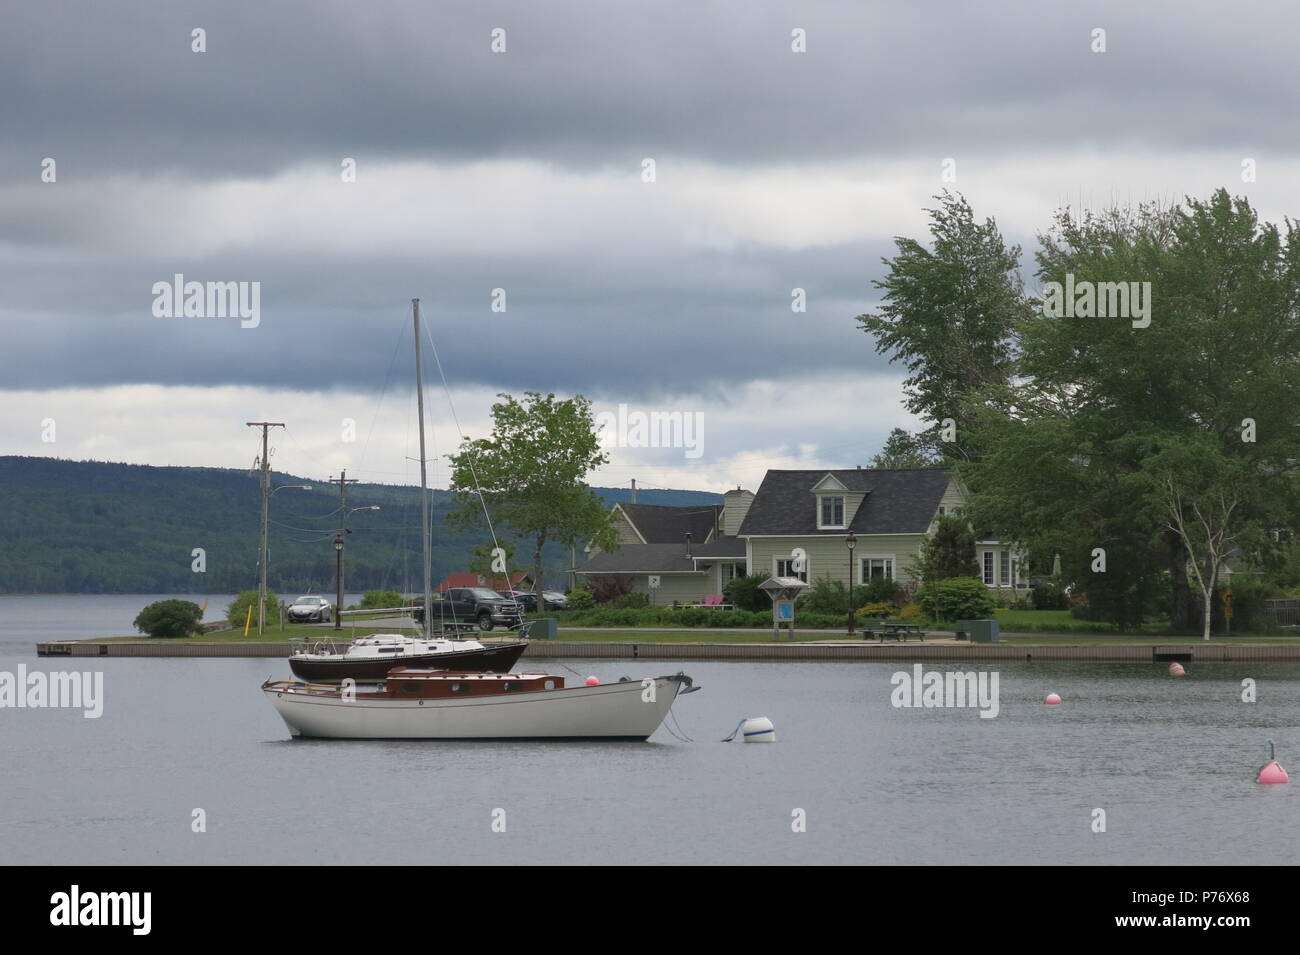 A view overlooking the harbour and lakefront at Baddeck, on the northern shores of Bras d'Or Lake, Nova Scotia, Canada. - Stock Image